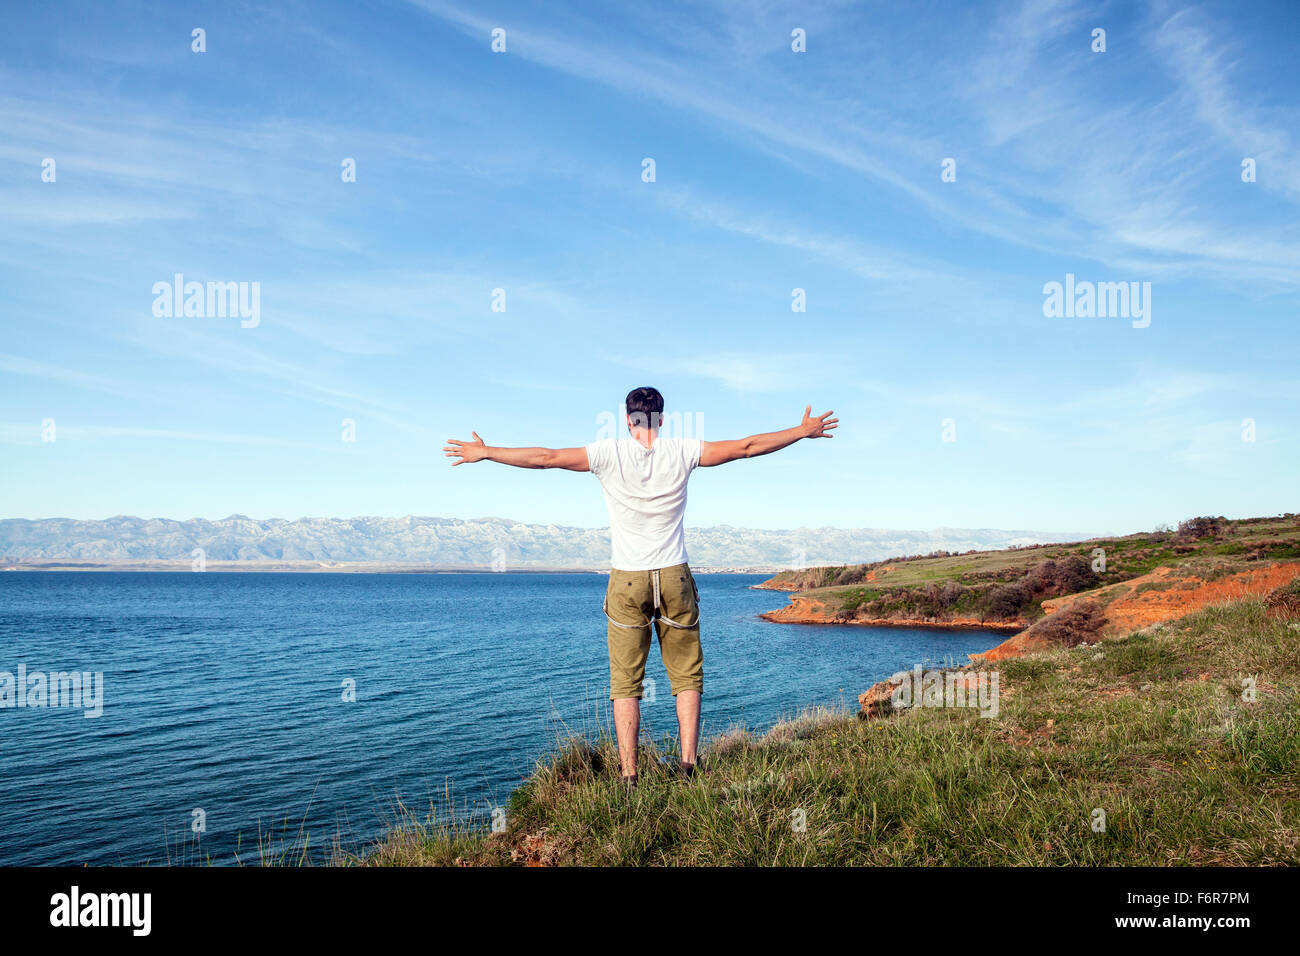 Young man stands on cliff arms outstretched - Stock Image